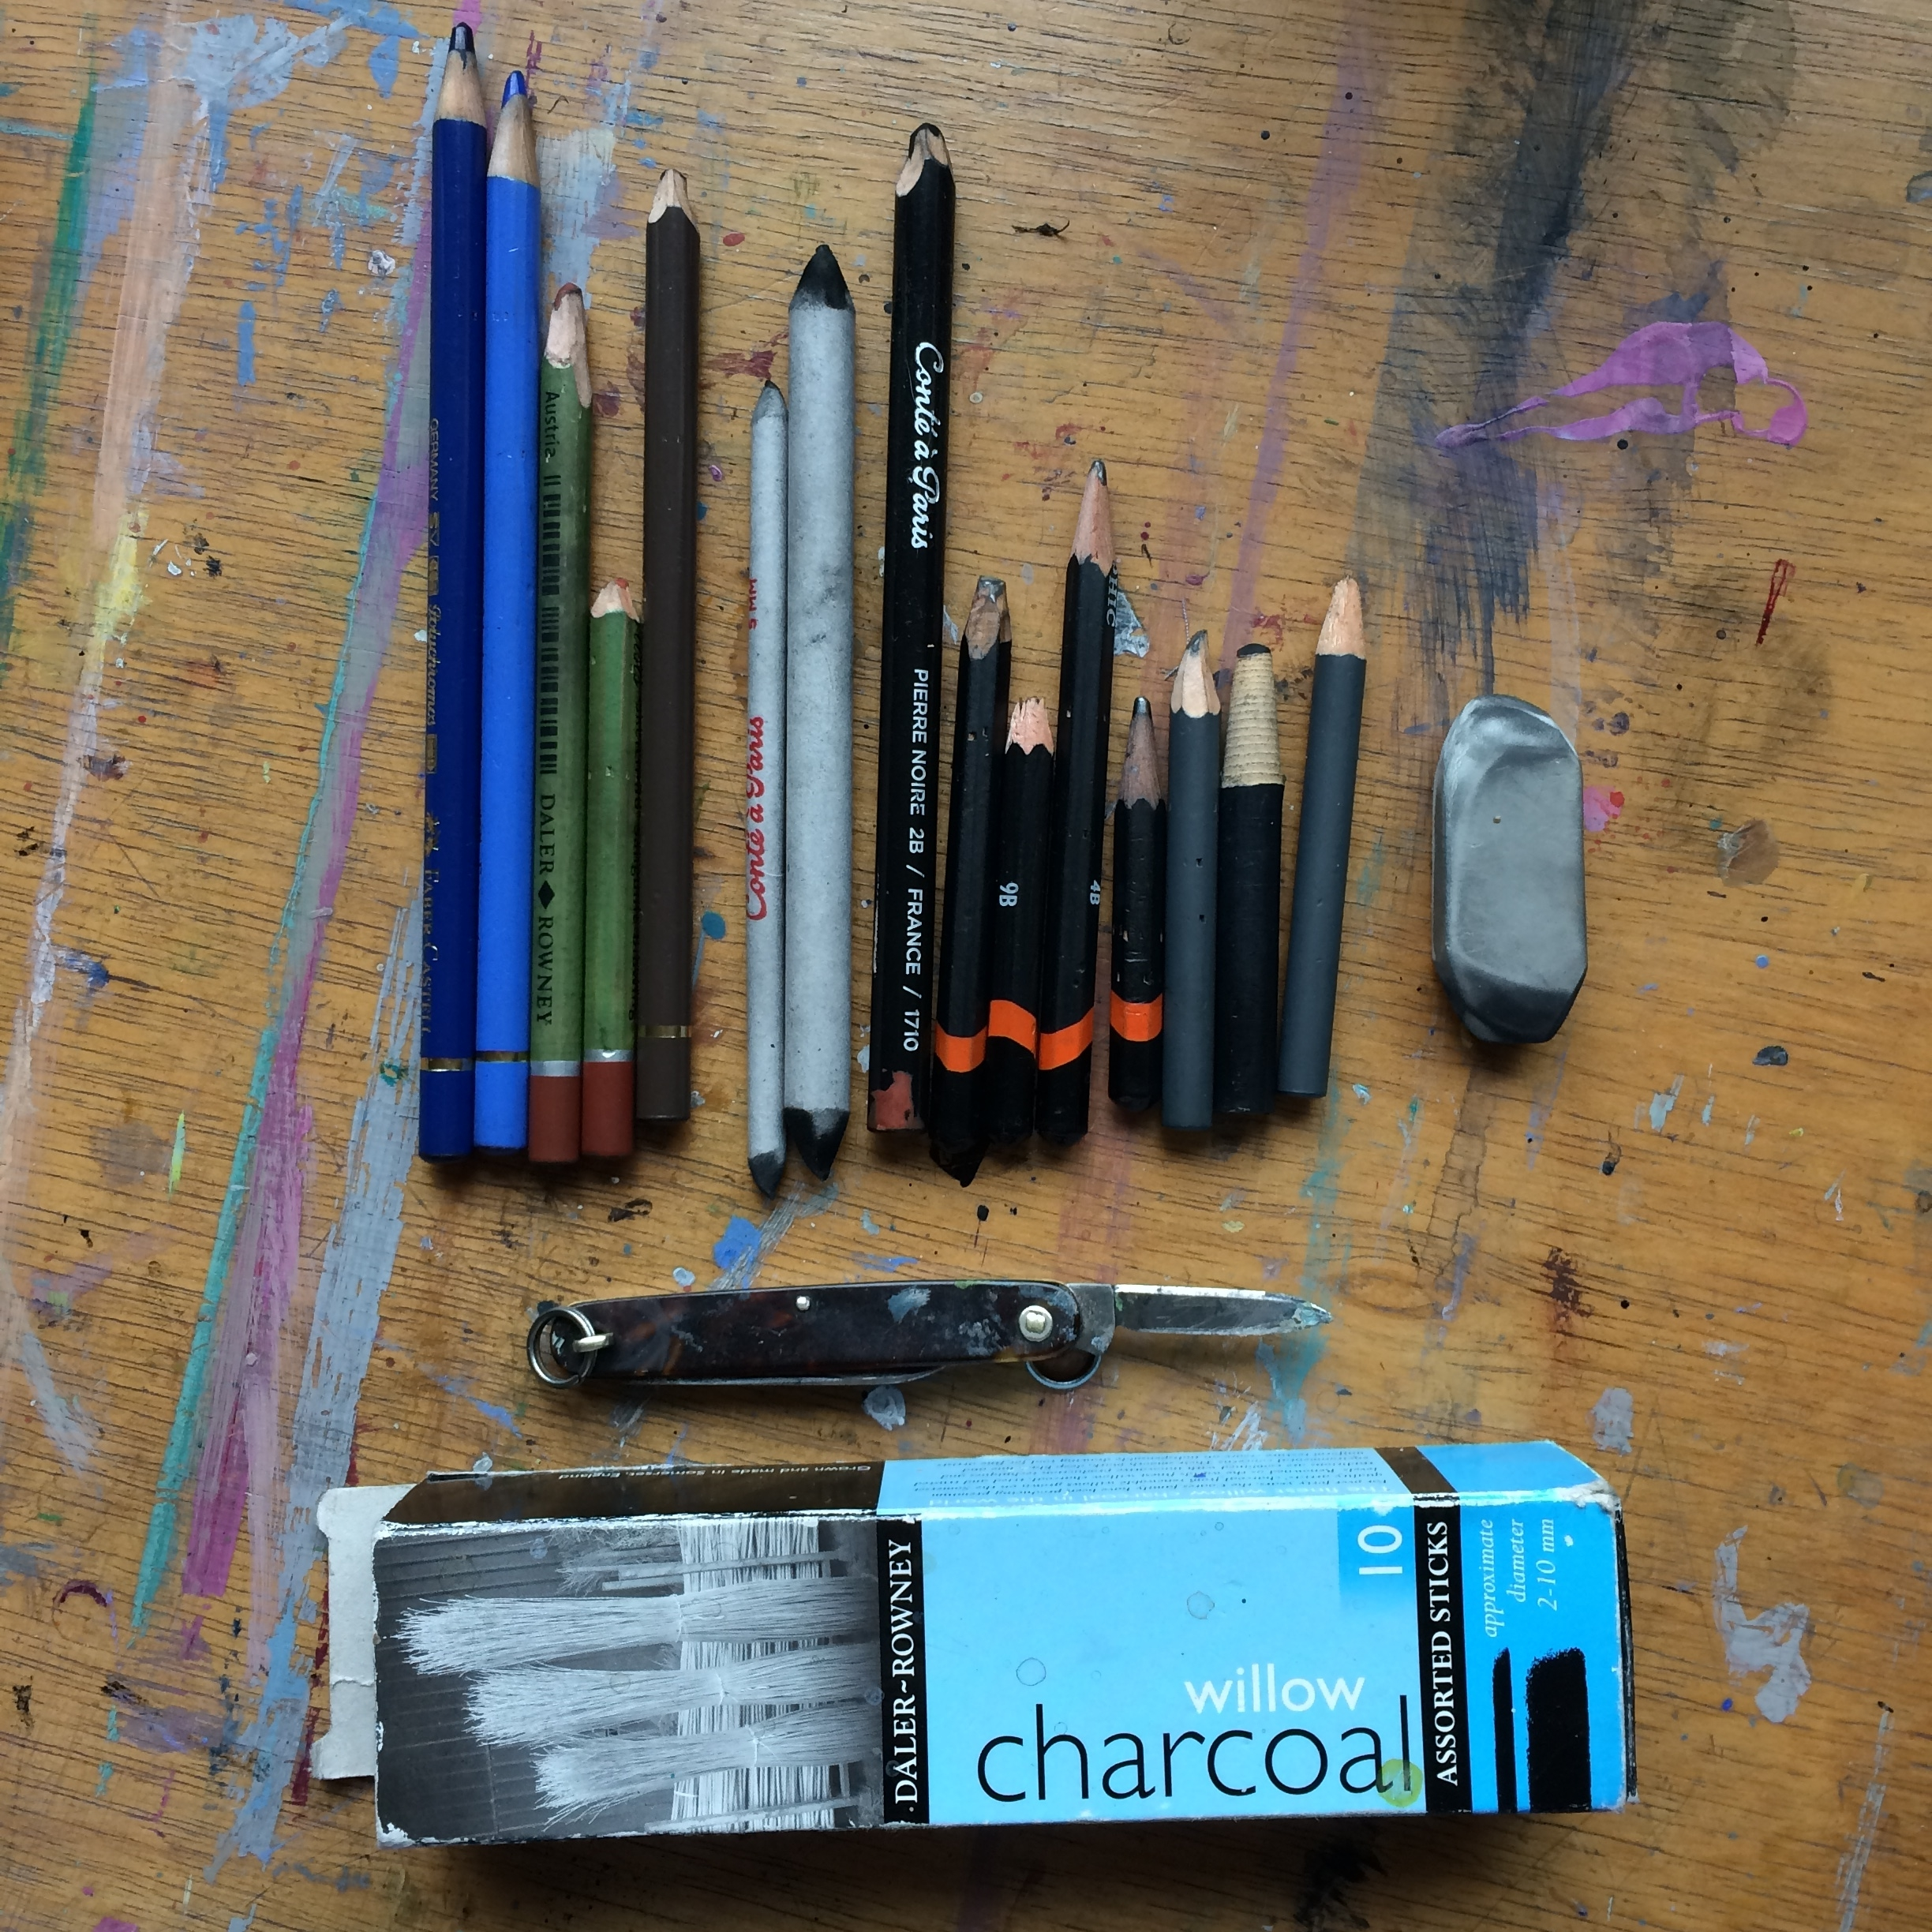 My usual drawing kit, from left to right: Polychromos coloured pencils, Daler Rowney pastel drawing pencils, Conte a Paris smudging sticks, Conte a Paris Pierre noire pencils, random selection of every worn out dark pencils (4B - 9B, usually nothing lighter), charcoal pencil, eraser. Charcoal. A knife for sharpening.